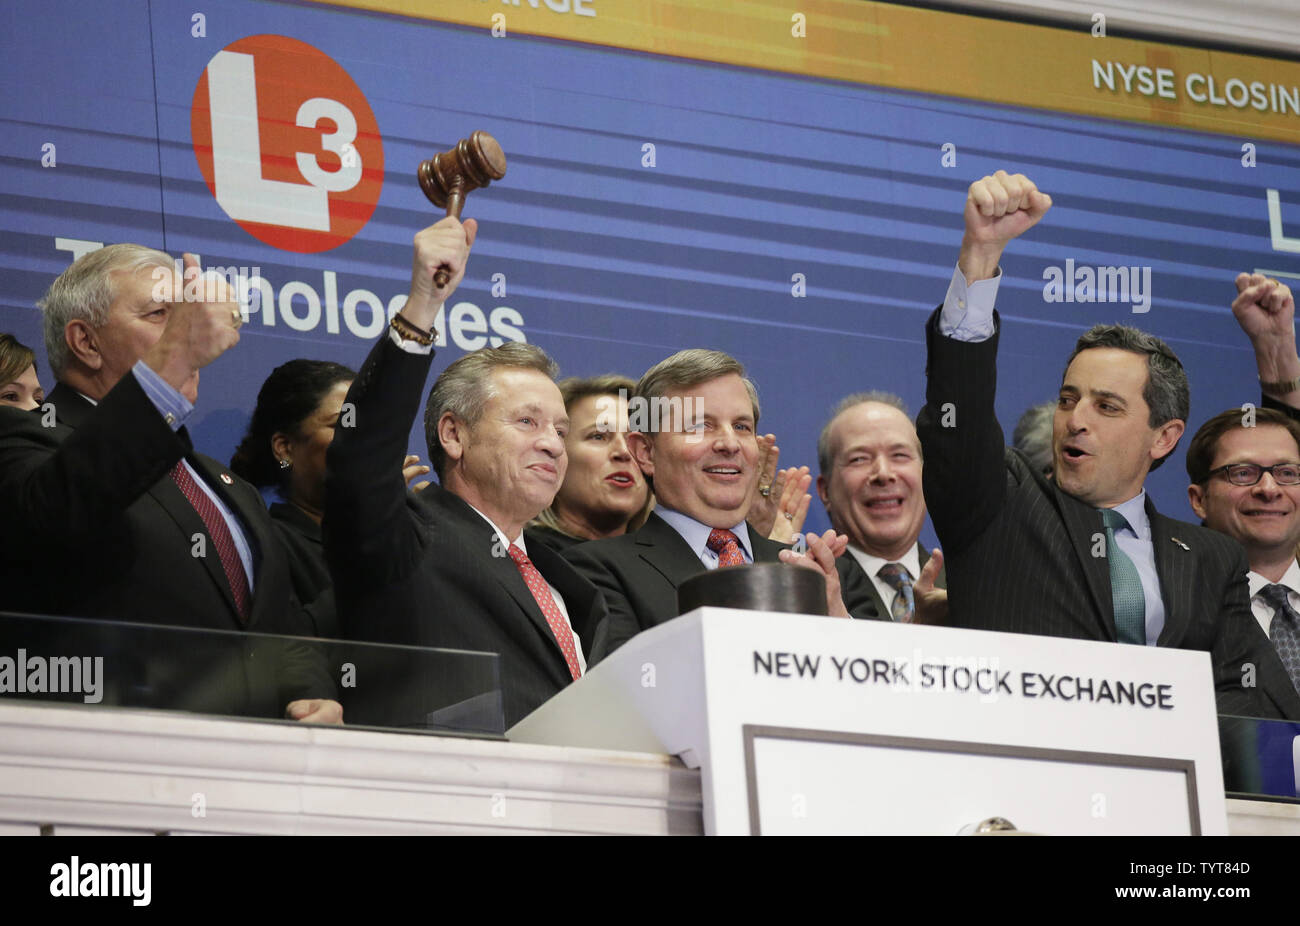 representatives of L3 Technologies ring the closing bell at the New York Stock Exchange on Wall Street in New York City on January 10, 2018. The S&P 500 and Nasdaq close lower for the first time in 2018. The Dow Jones industrial average fell 16.67 points to 25,369.13.      Photo by John Angelillo/UPI - Stock Image